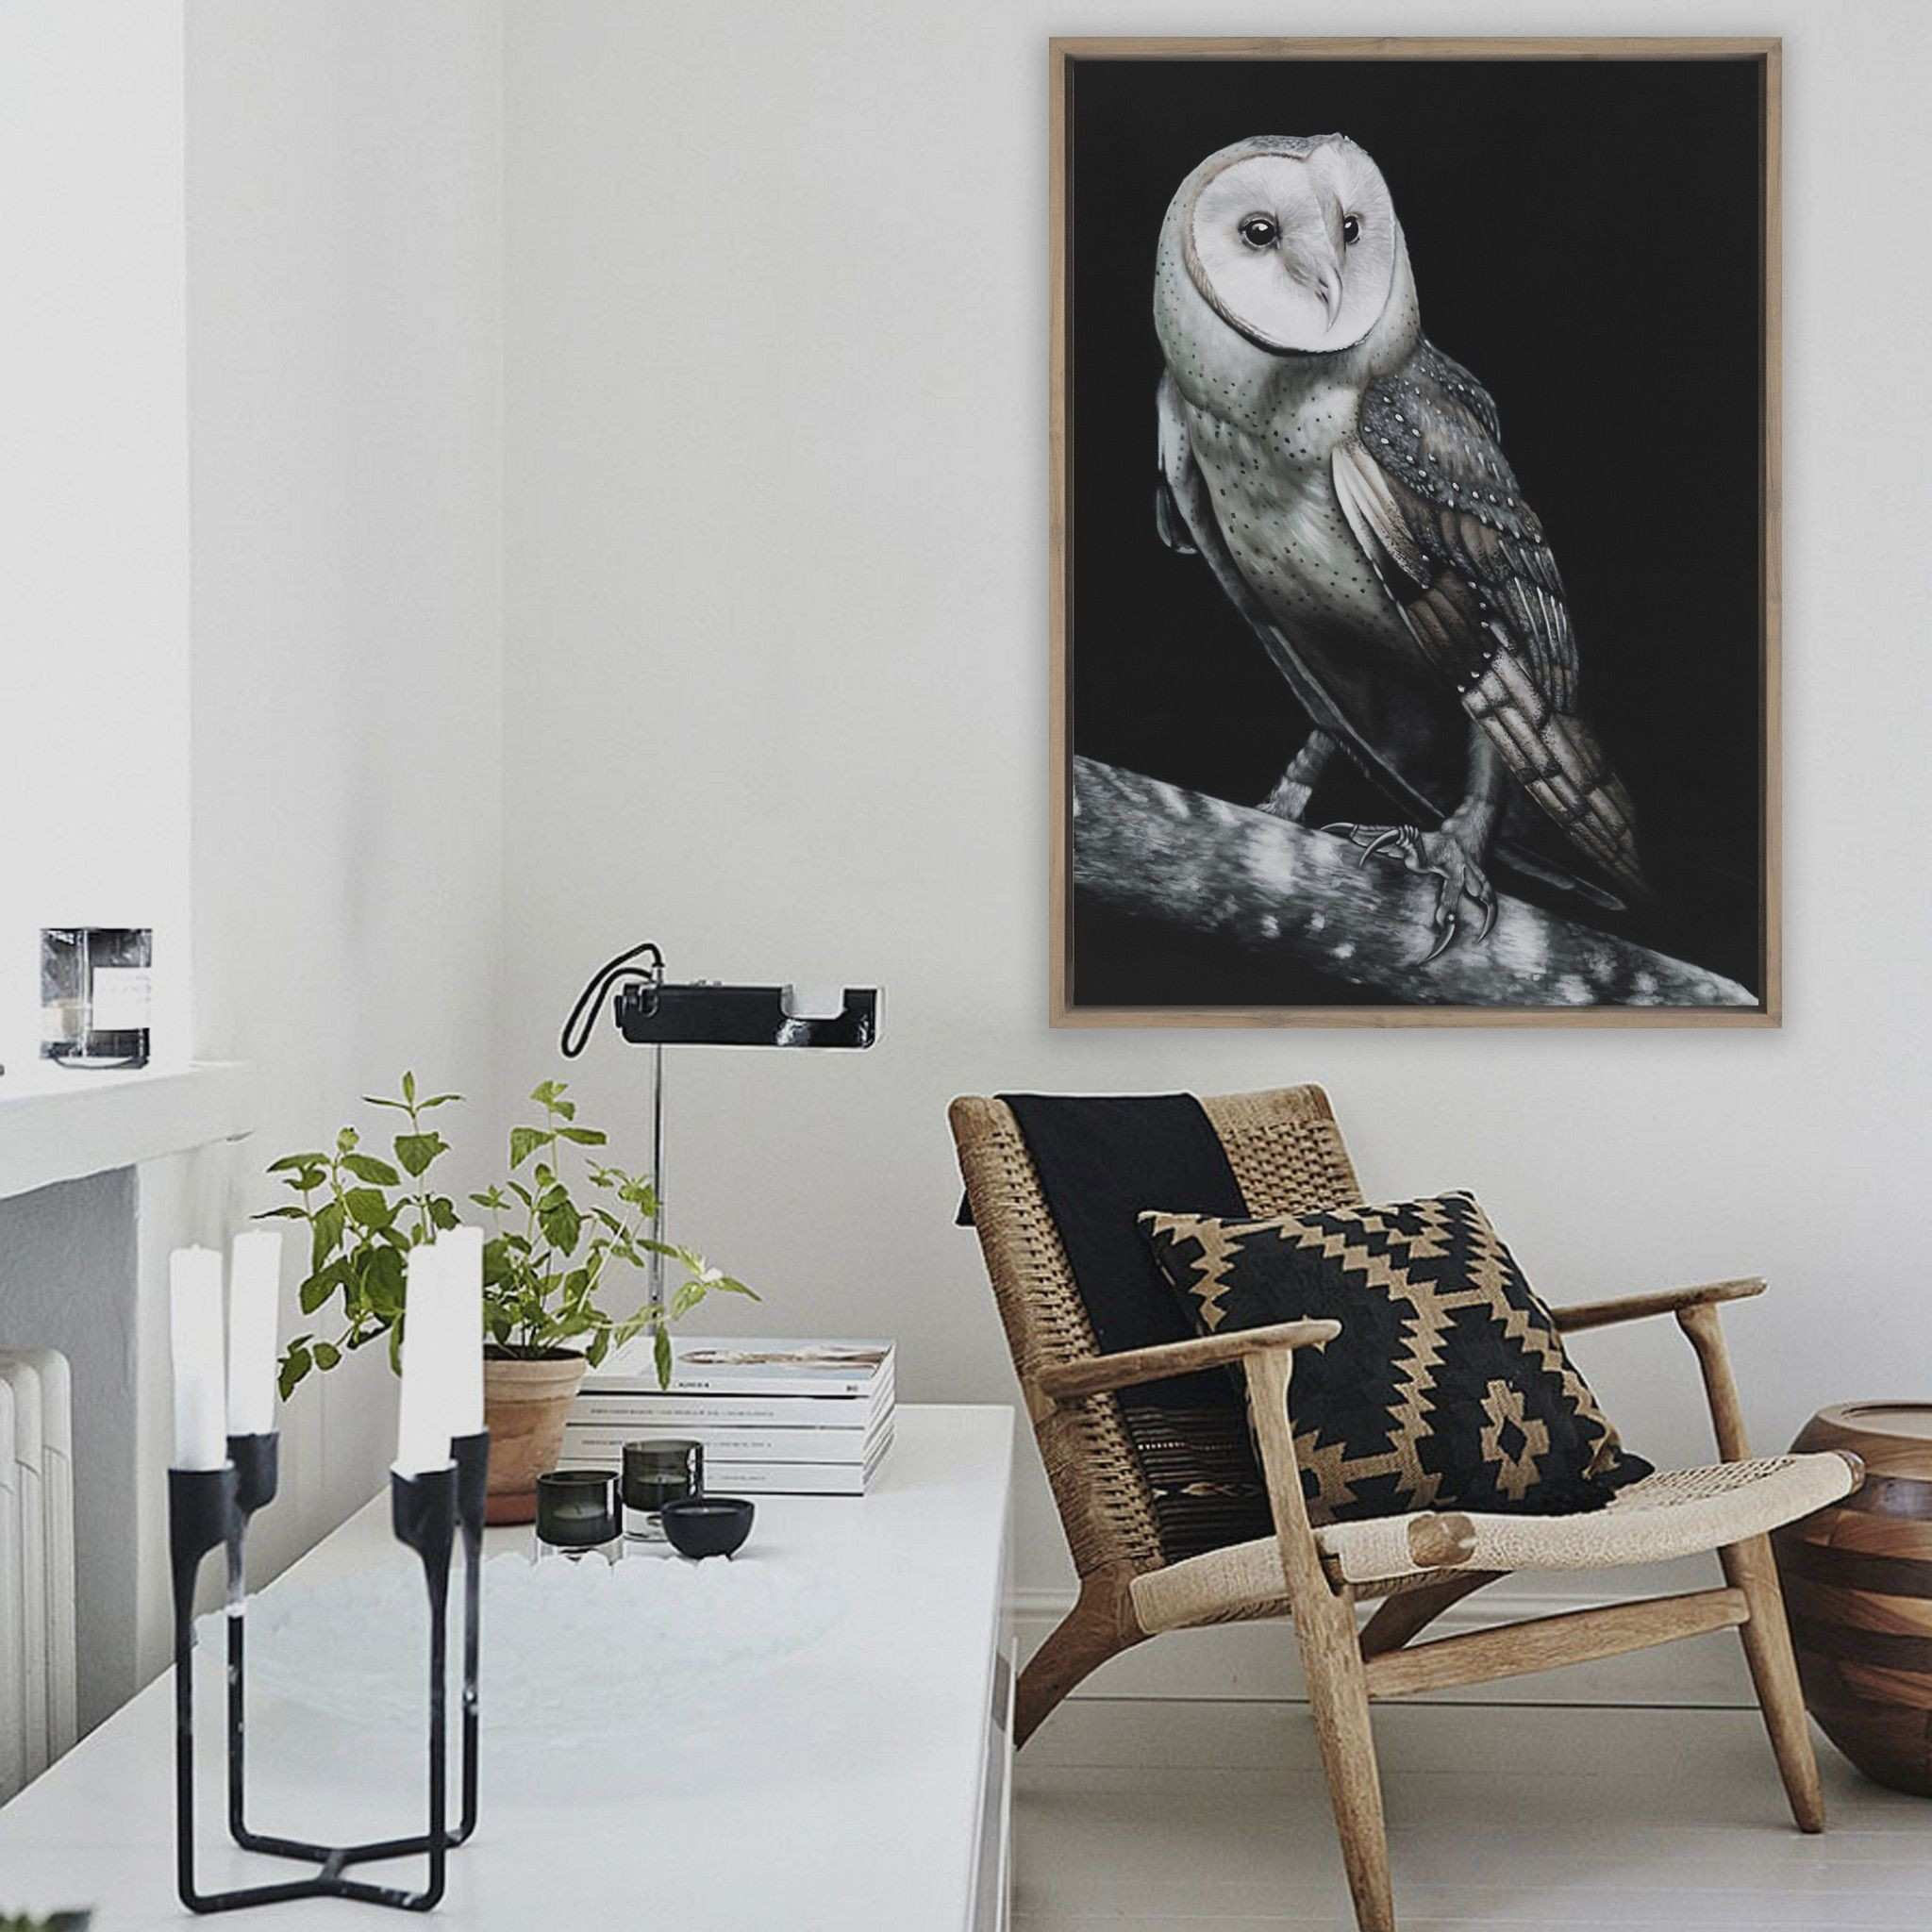 Featuring a striking owl perched on a branch and set against a